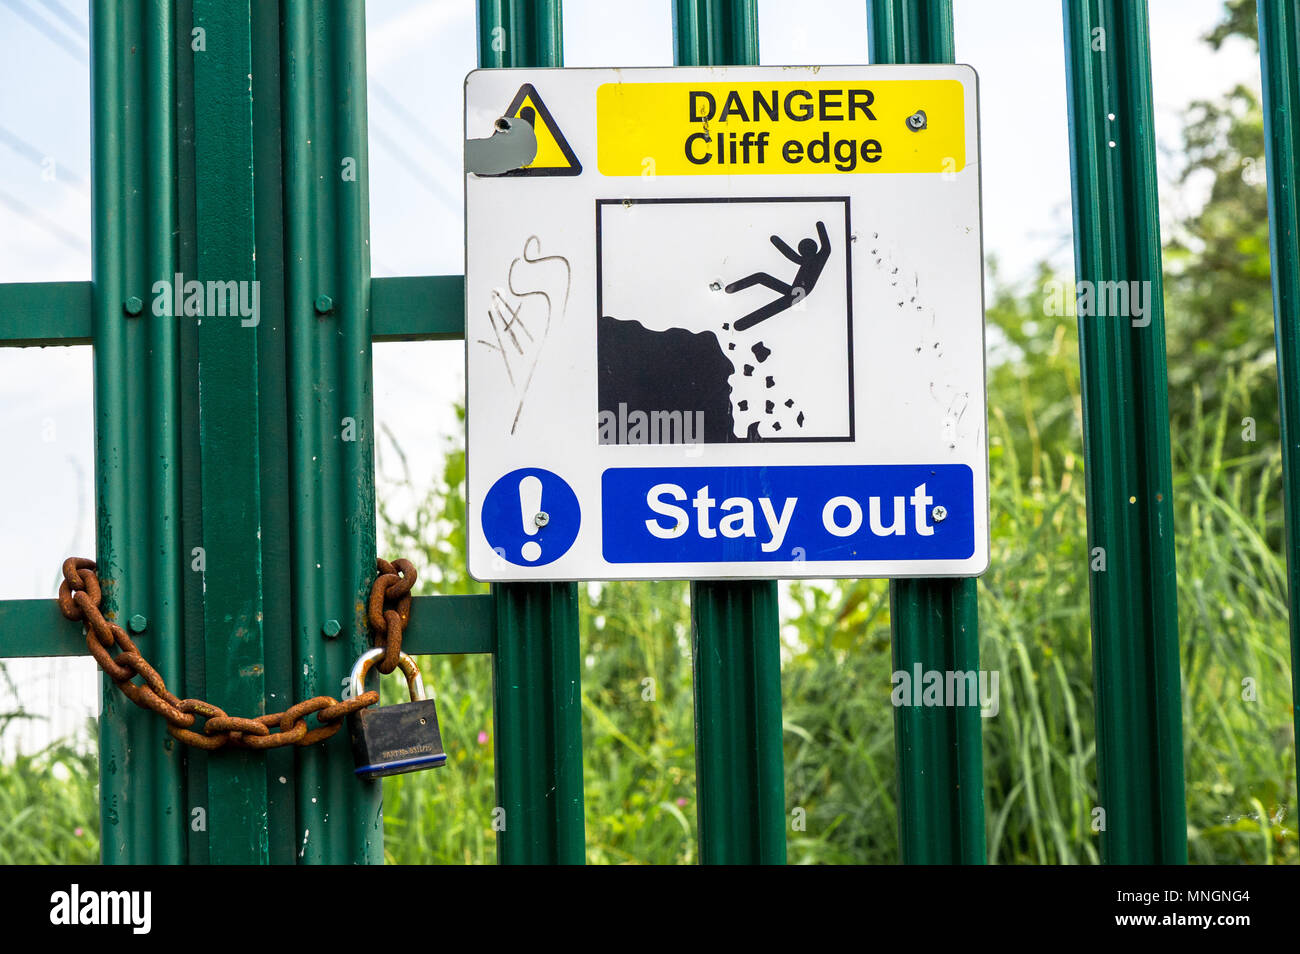 danger Cliff edge stay out sign. - Stock Image